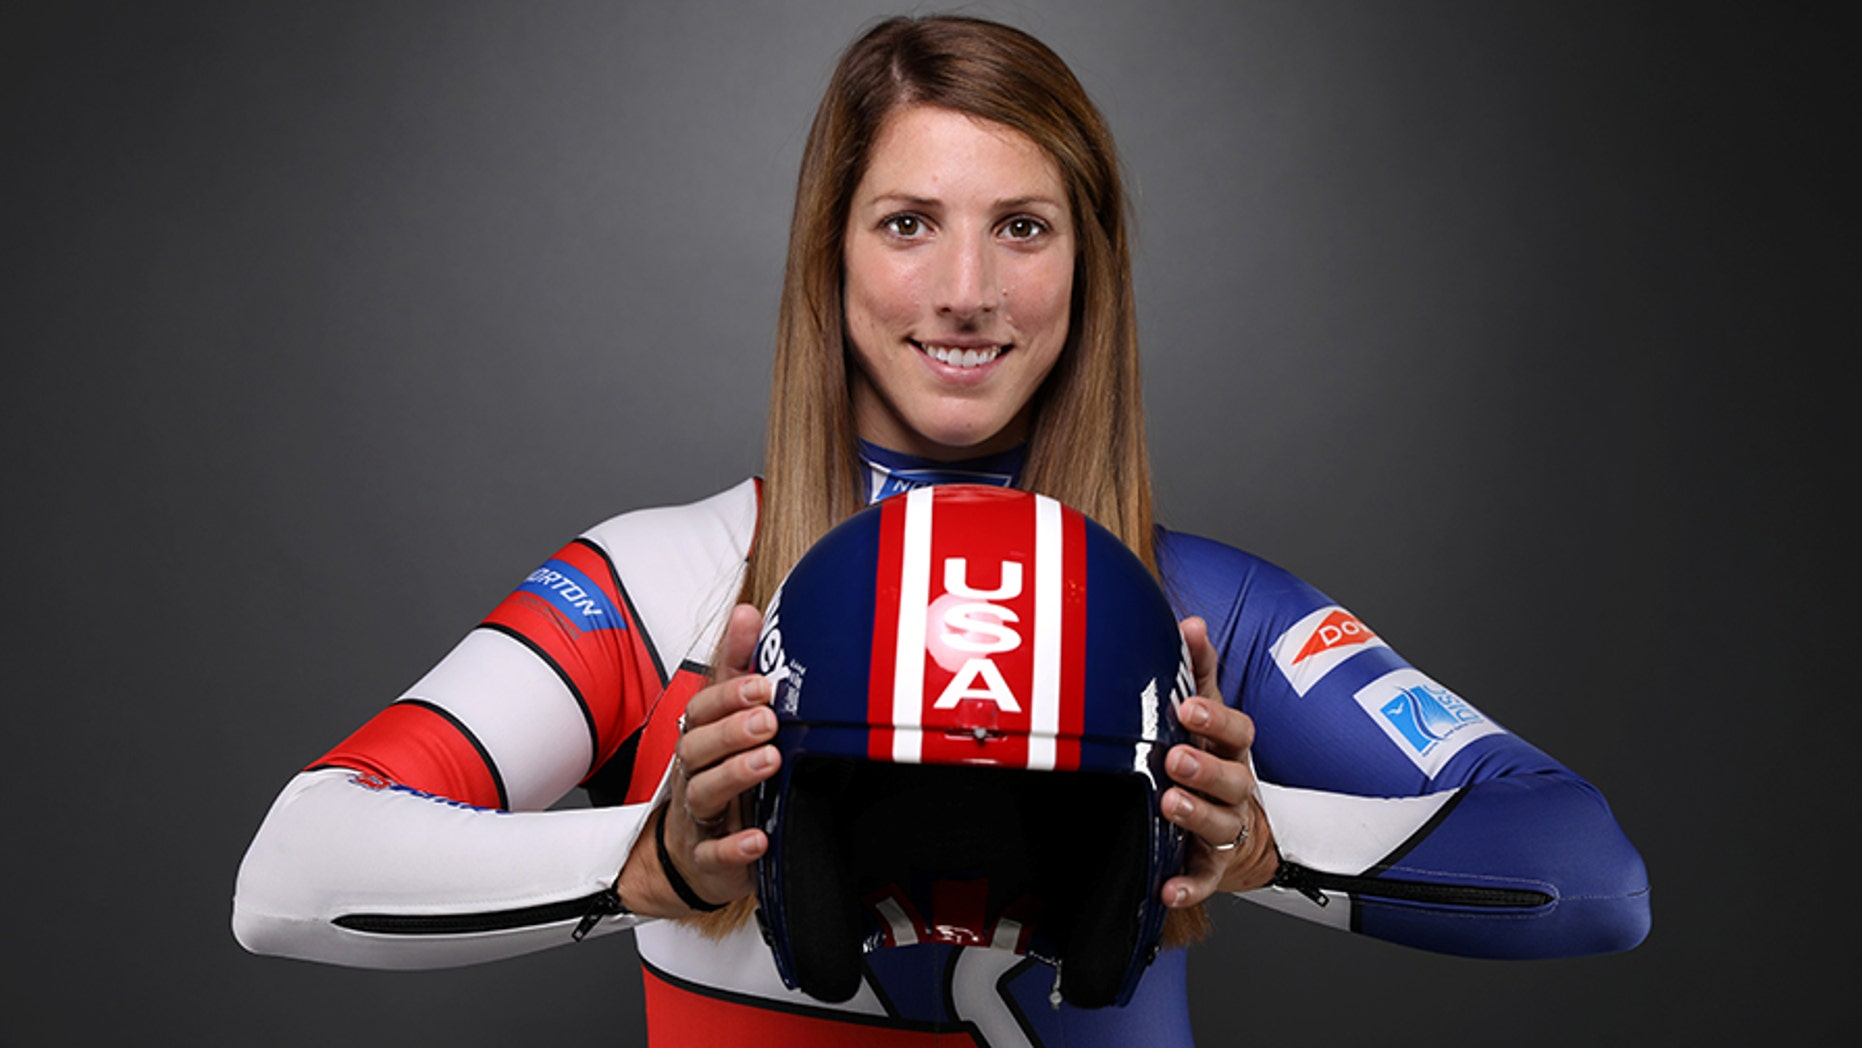 Luge racer Erin Hamlin will carry the U.S. flag in the 2018 Olympic Opening Ceremony, the U.S. Olympic committee announced Wednesday.